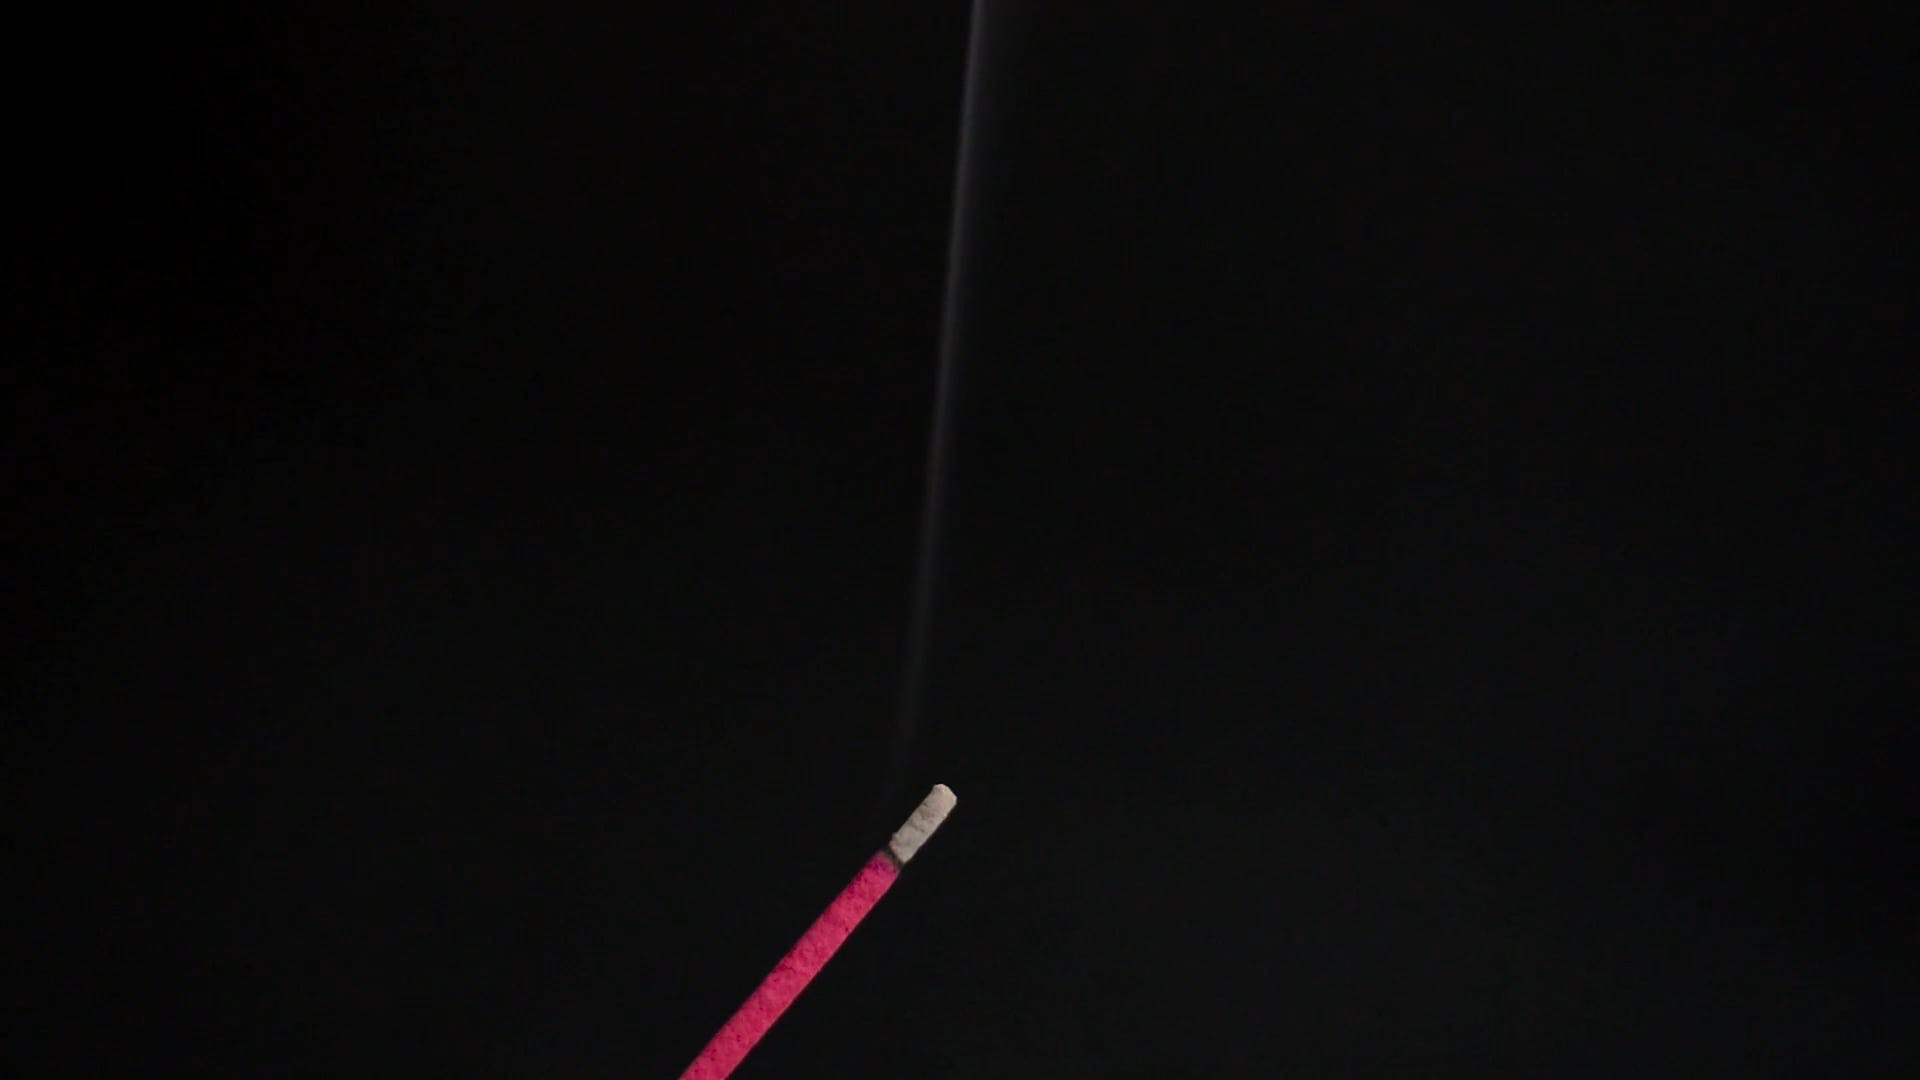 A Burning Incense Stick